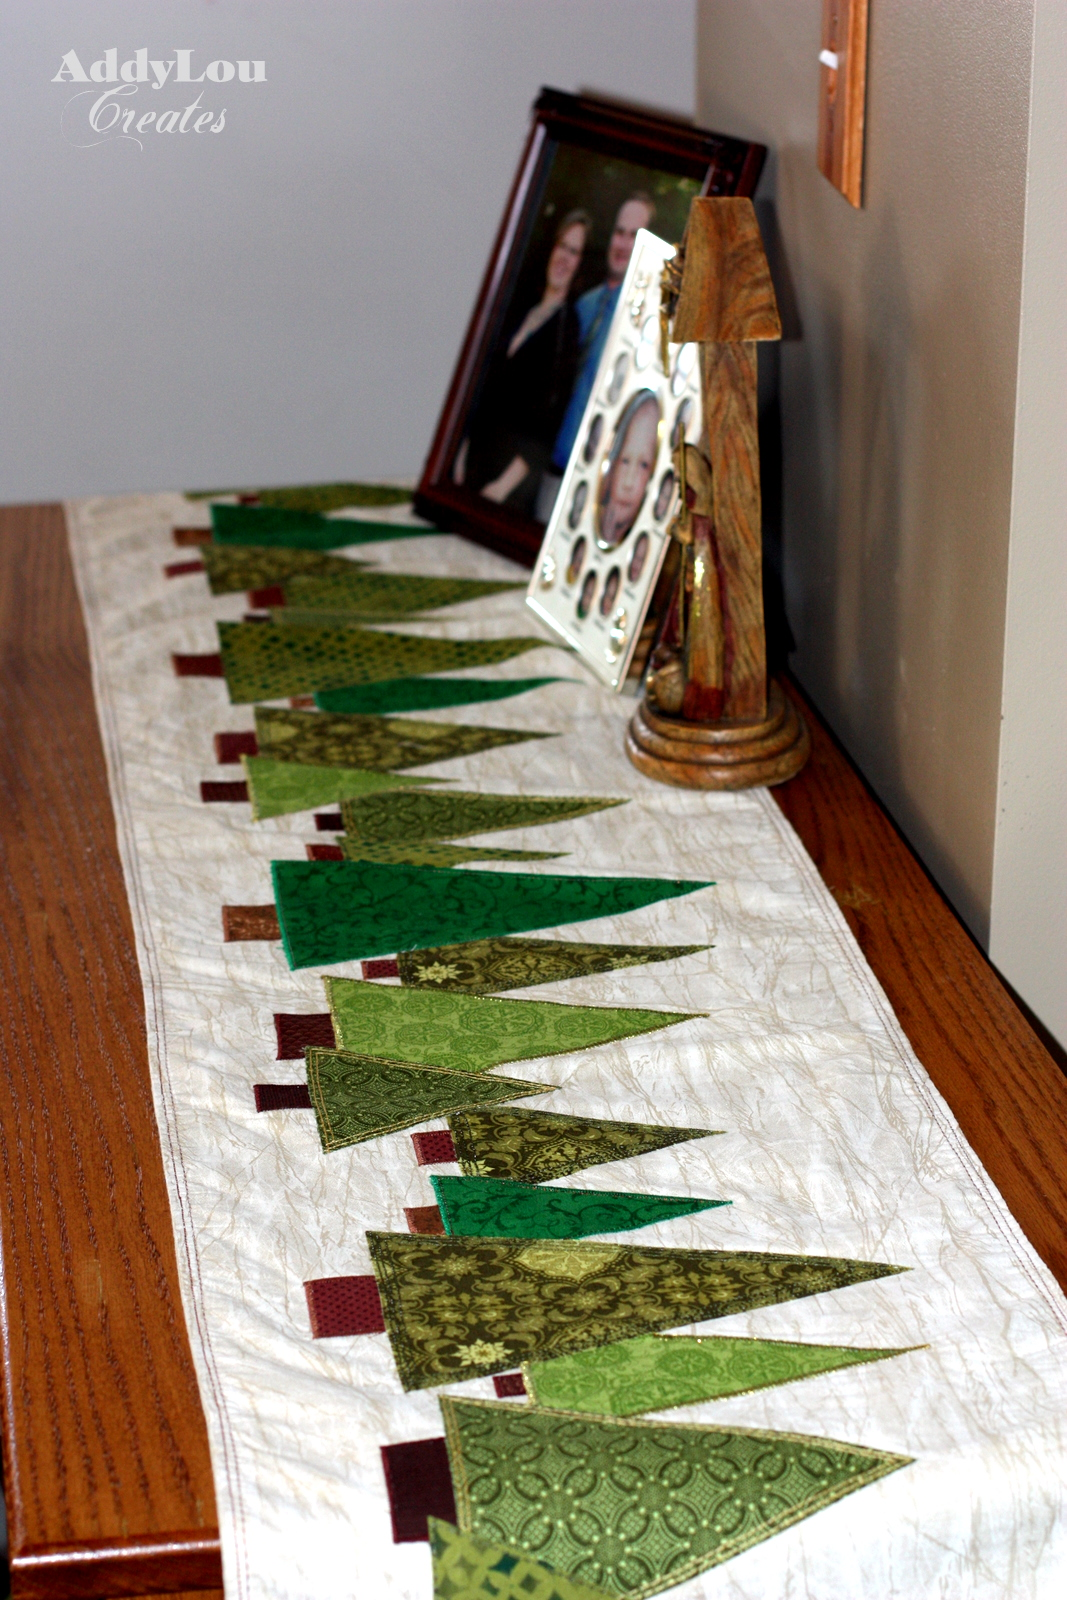 addy lou creates handmade christmas cheer tree table runner tutorial. Black Bedroom Furniture Sets. Home Design Ideas